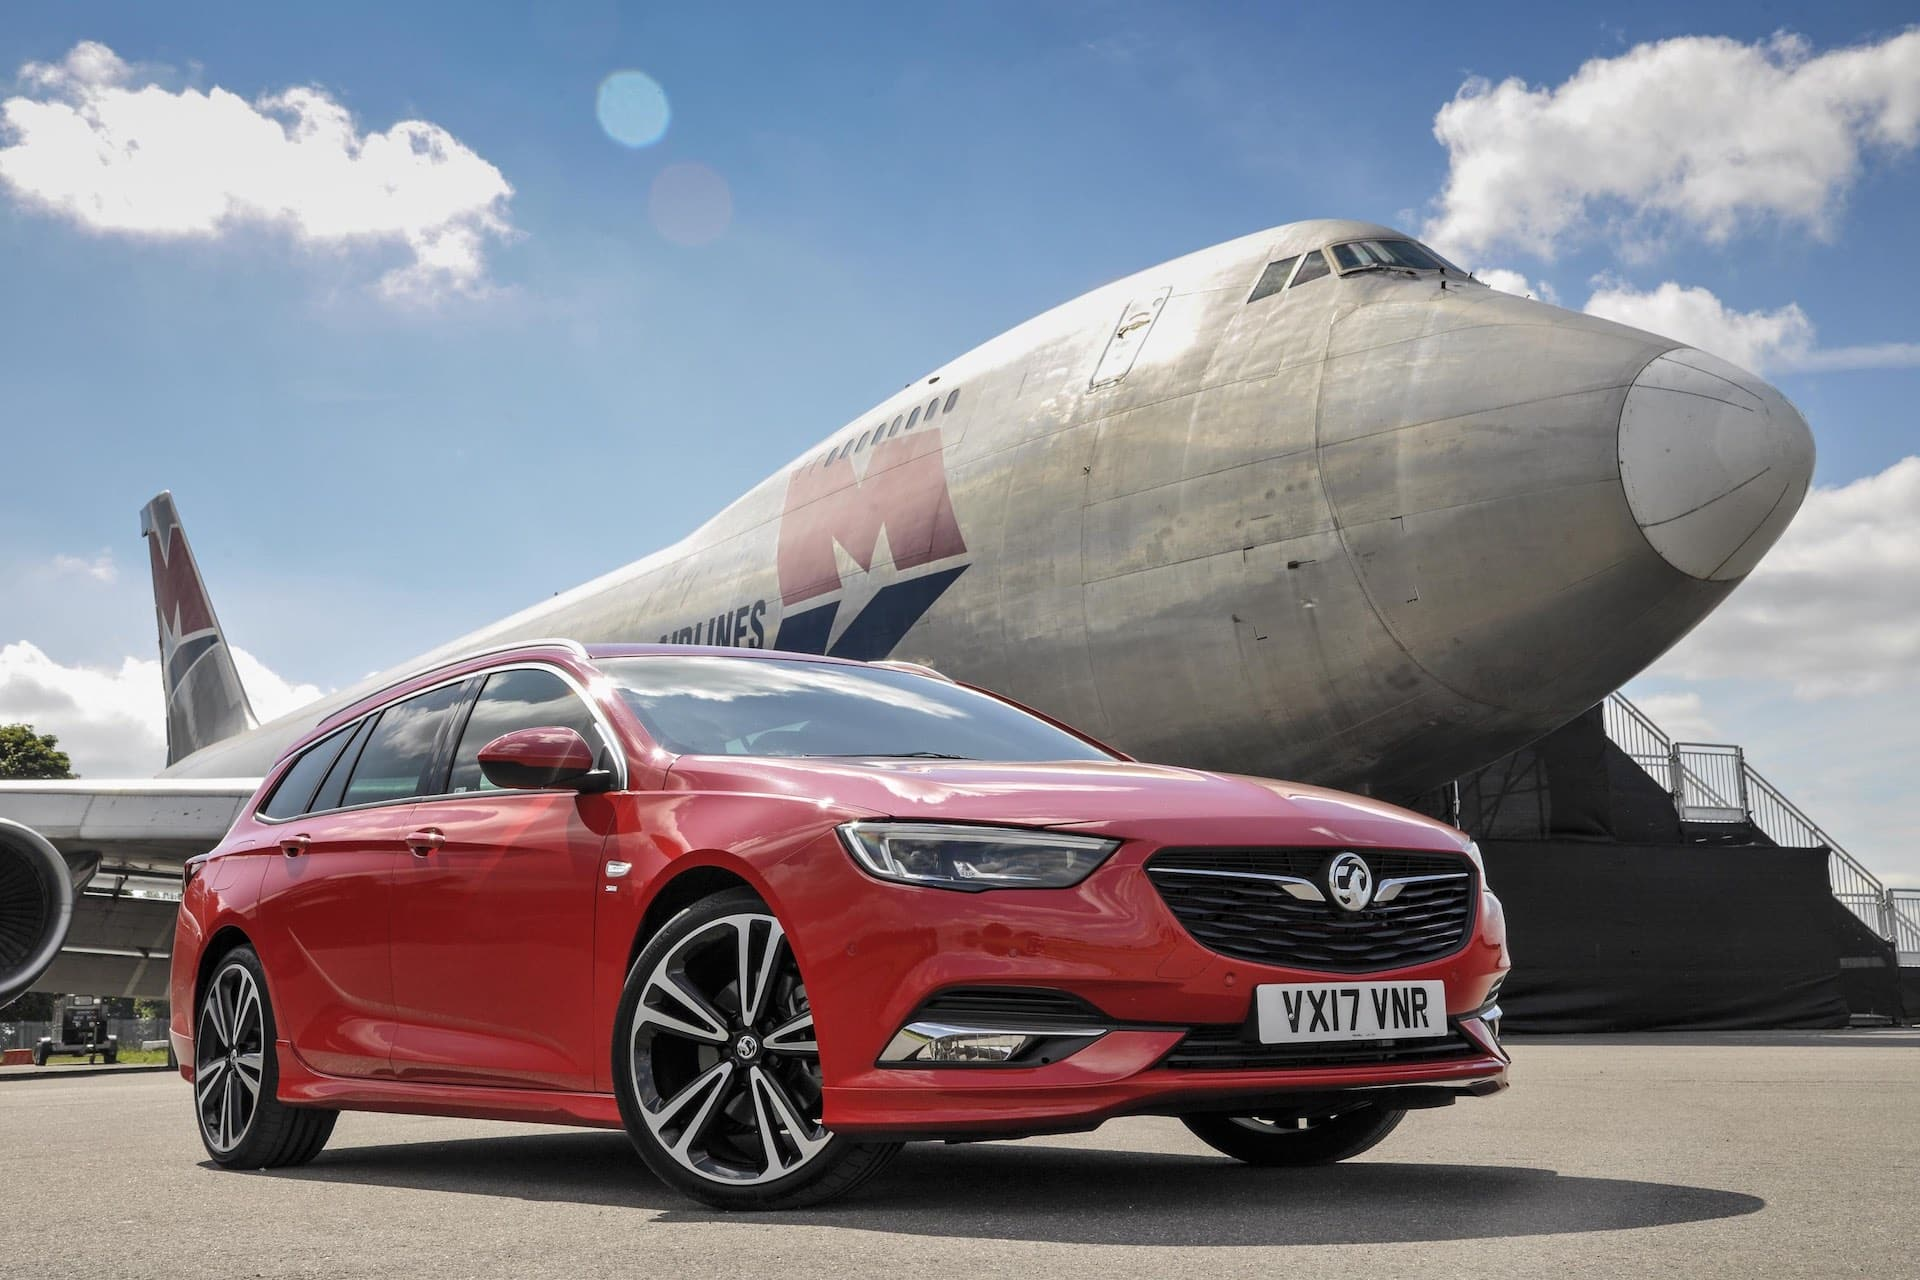 Vauxhall Insignia Sports Tourer in front of a Boeing 747